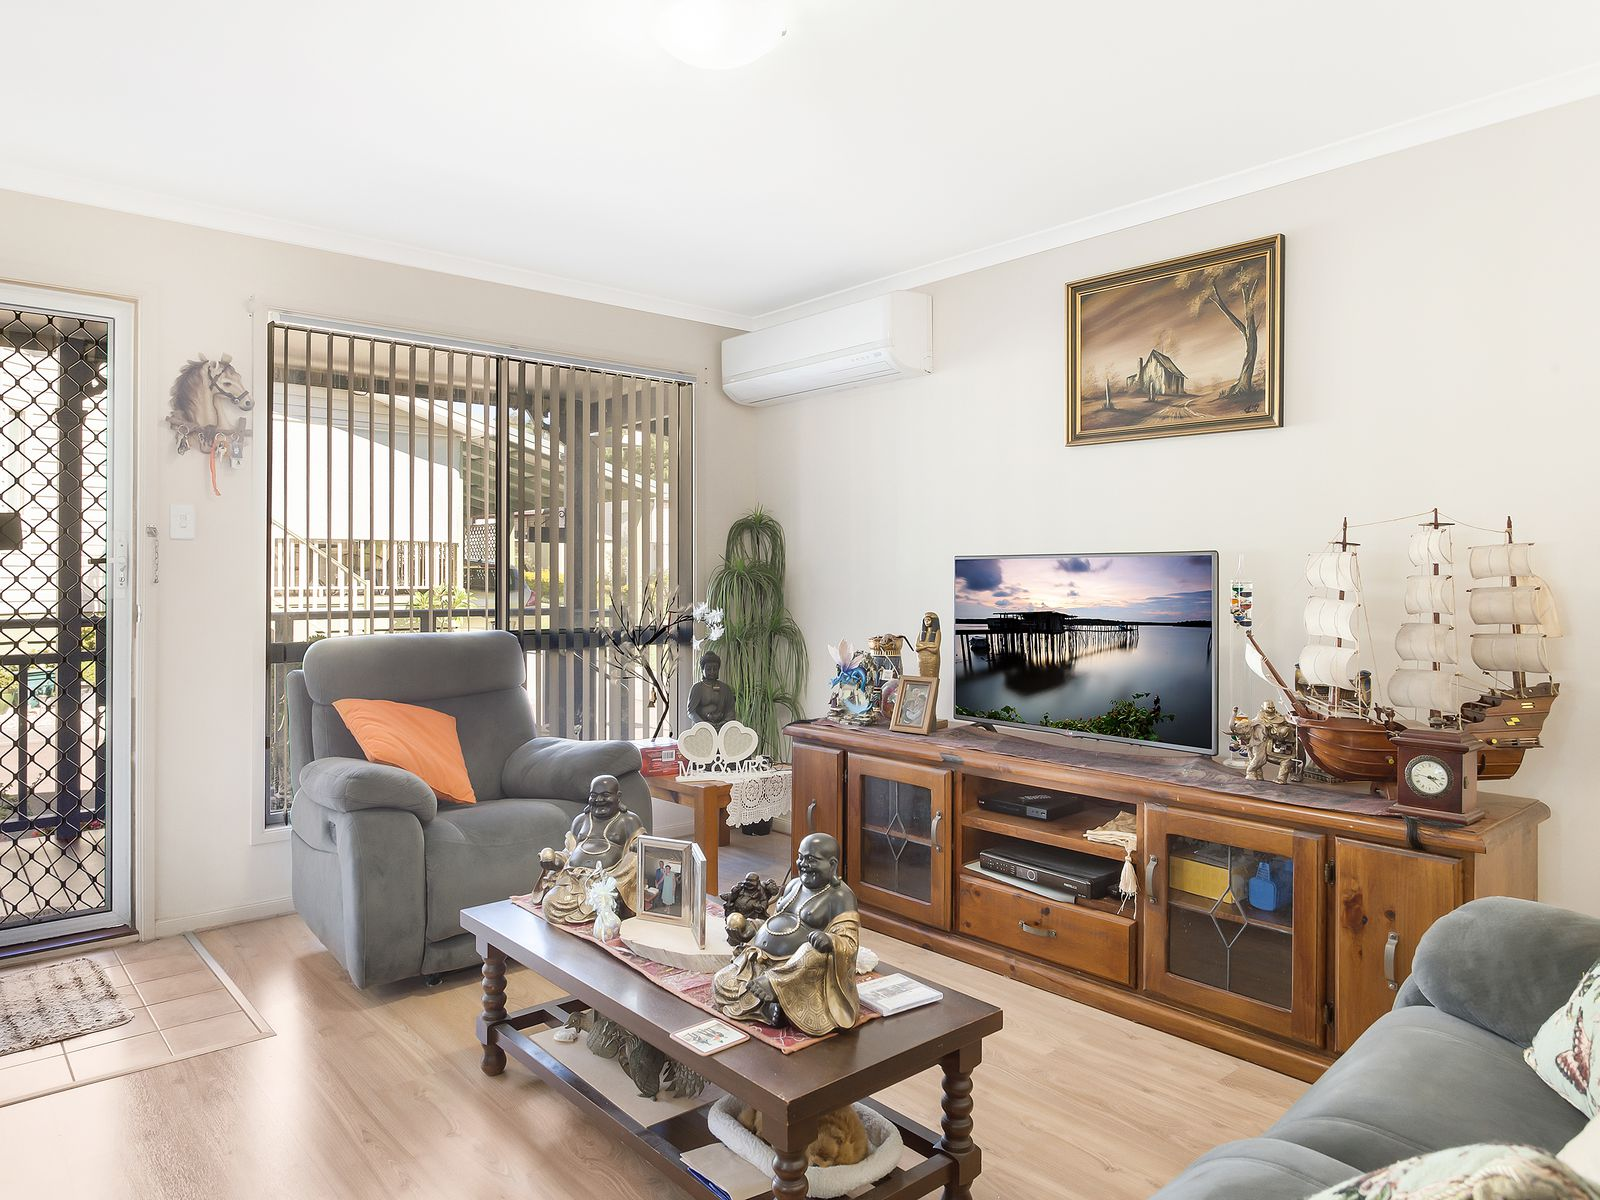 133 / 601 Fishery Point Road, Bonnells Bay